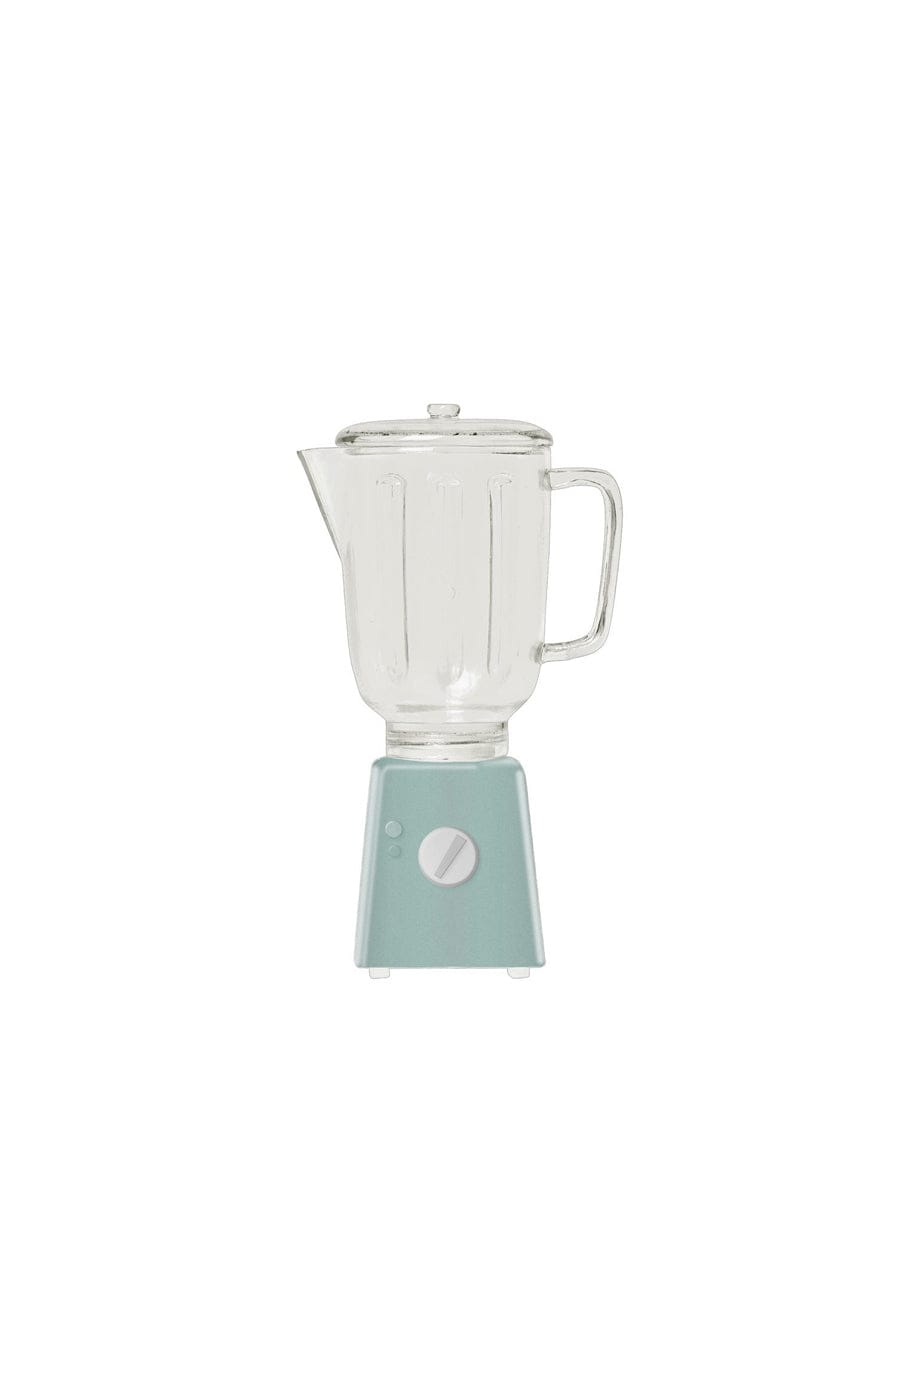 Maileg Minature Blender, Mint - Hello Little Birdie